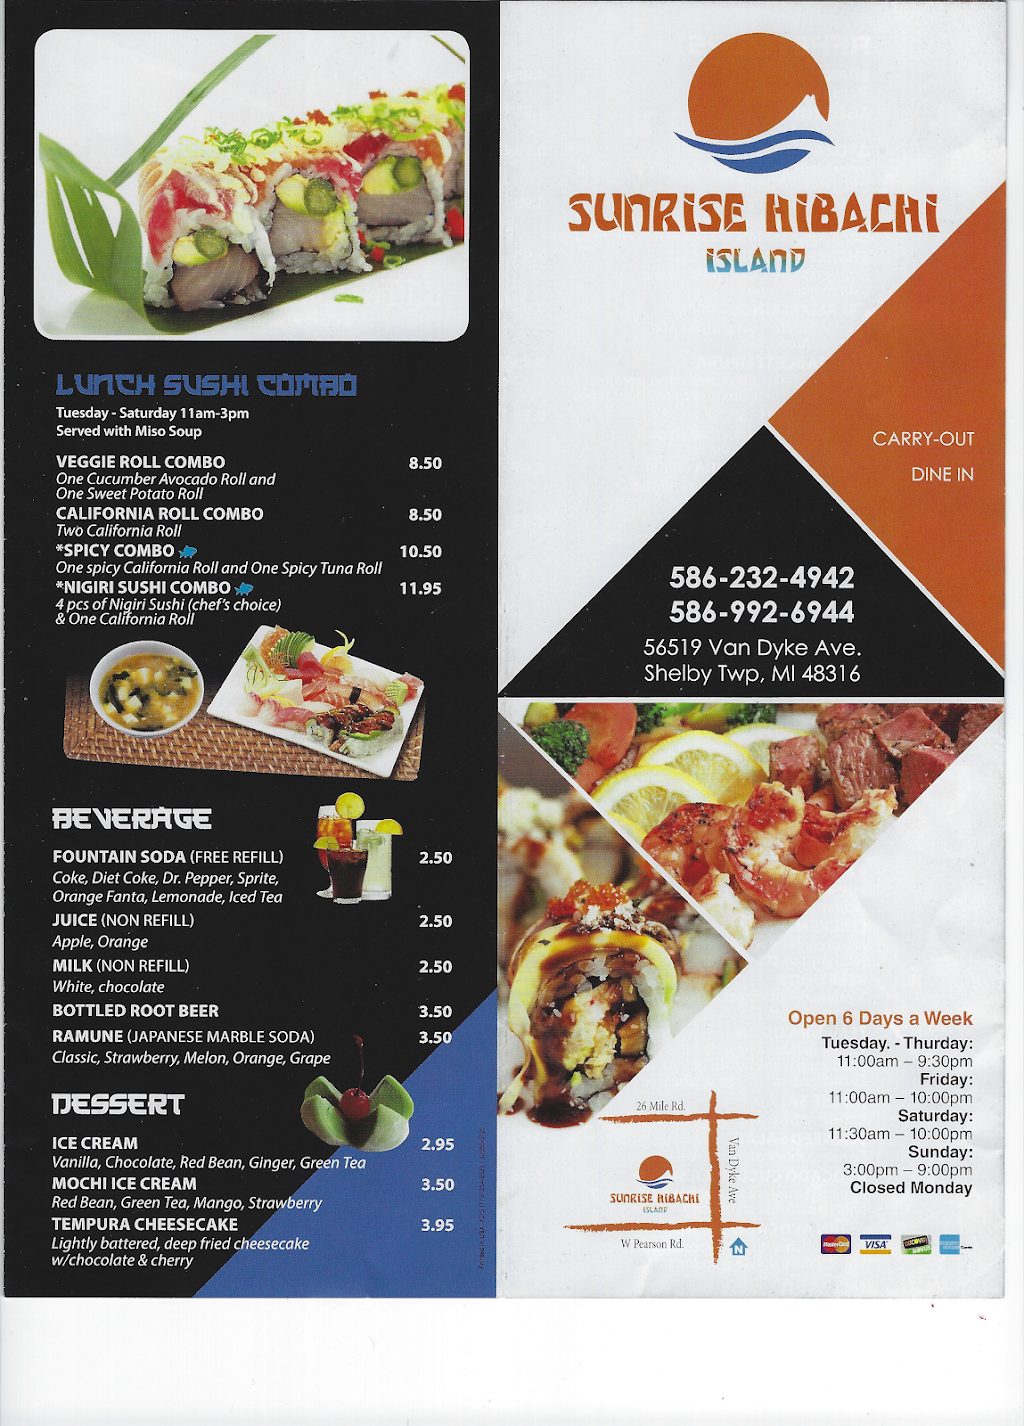 sunrise hibachi island | restaurant | 56519 Van Dyke Ave, Shelby Charter Twp, MI 48316, USA | 5862324942 OR +1 586-232-4942